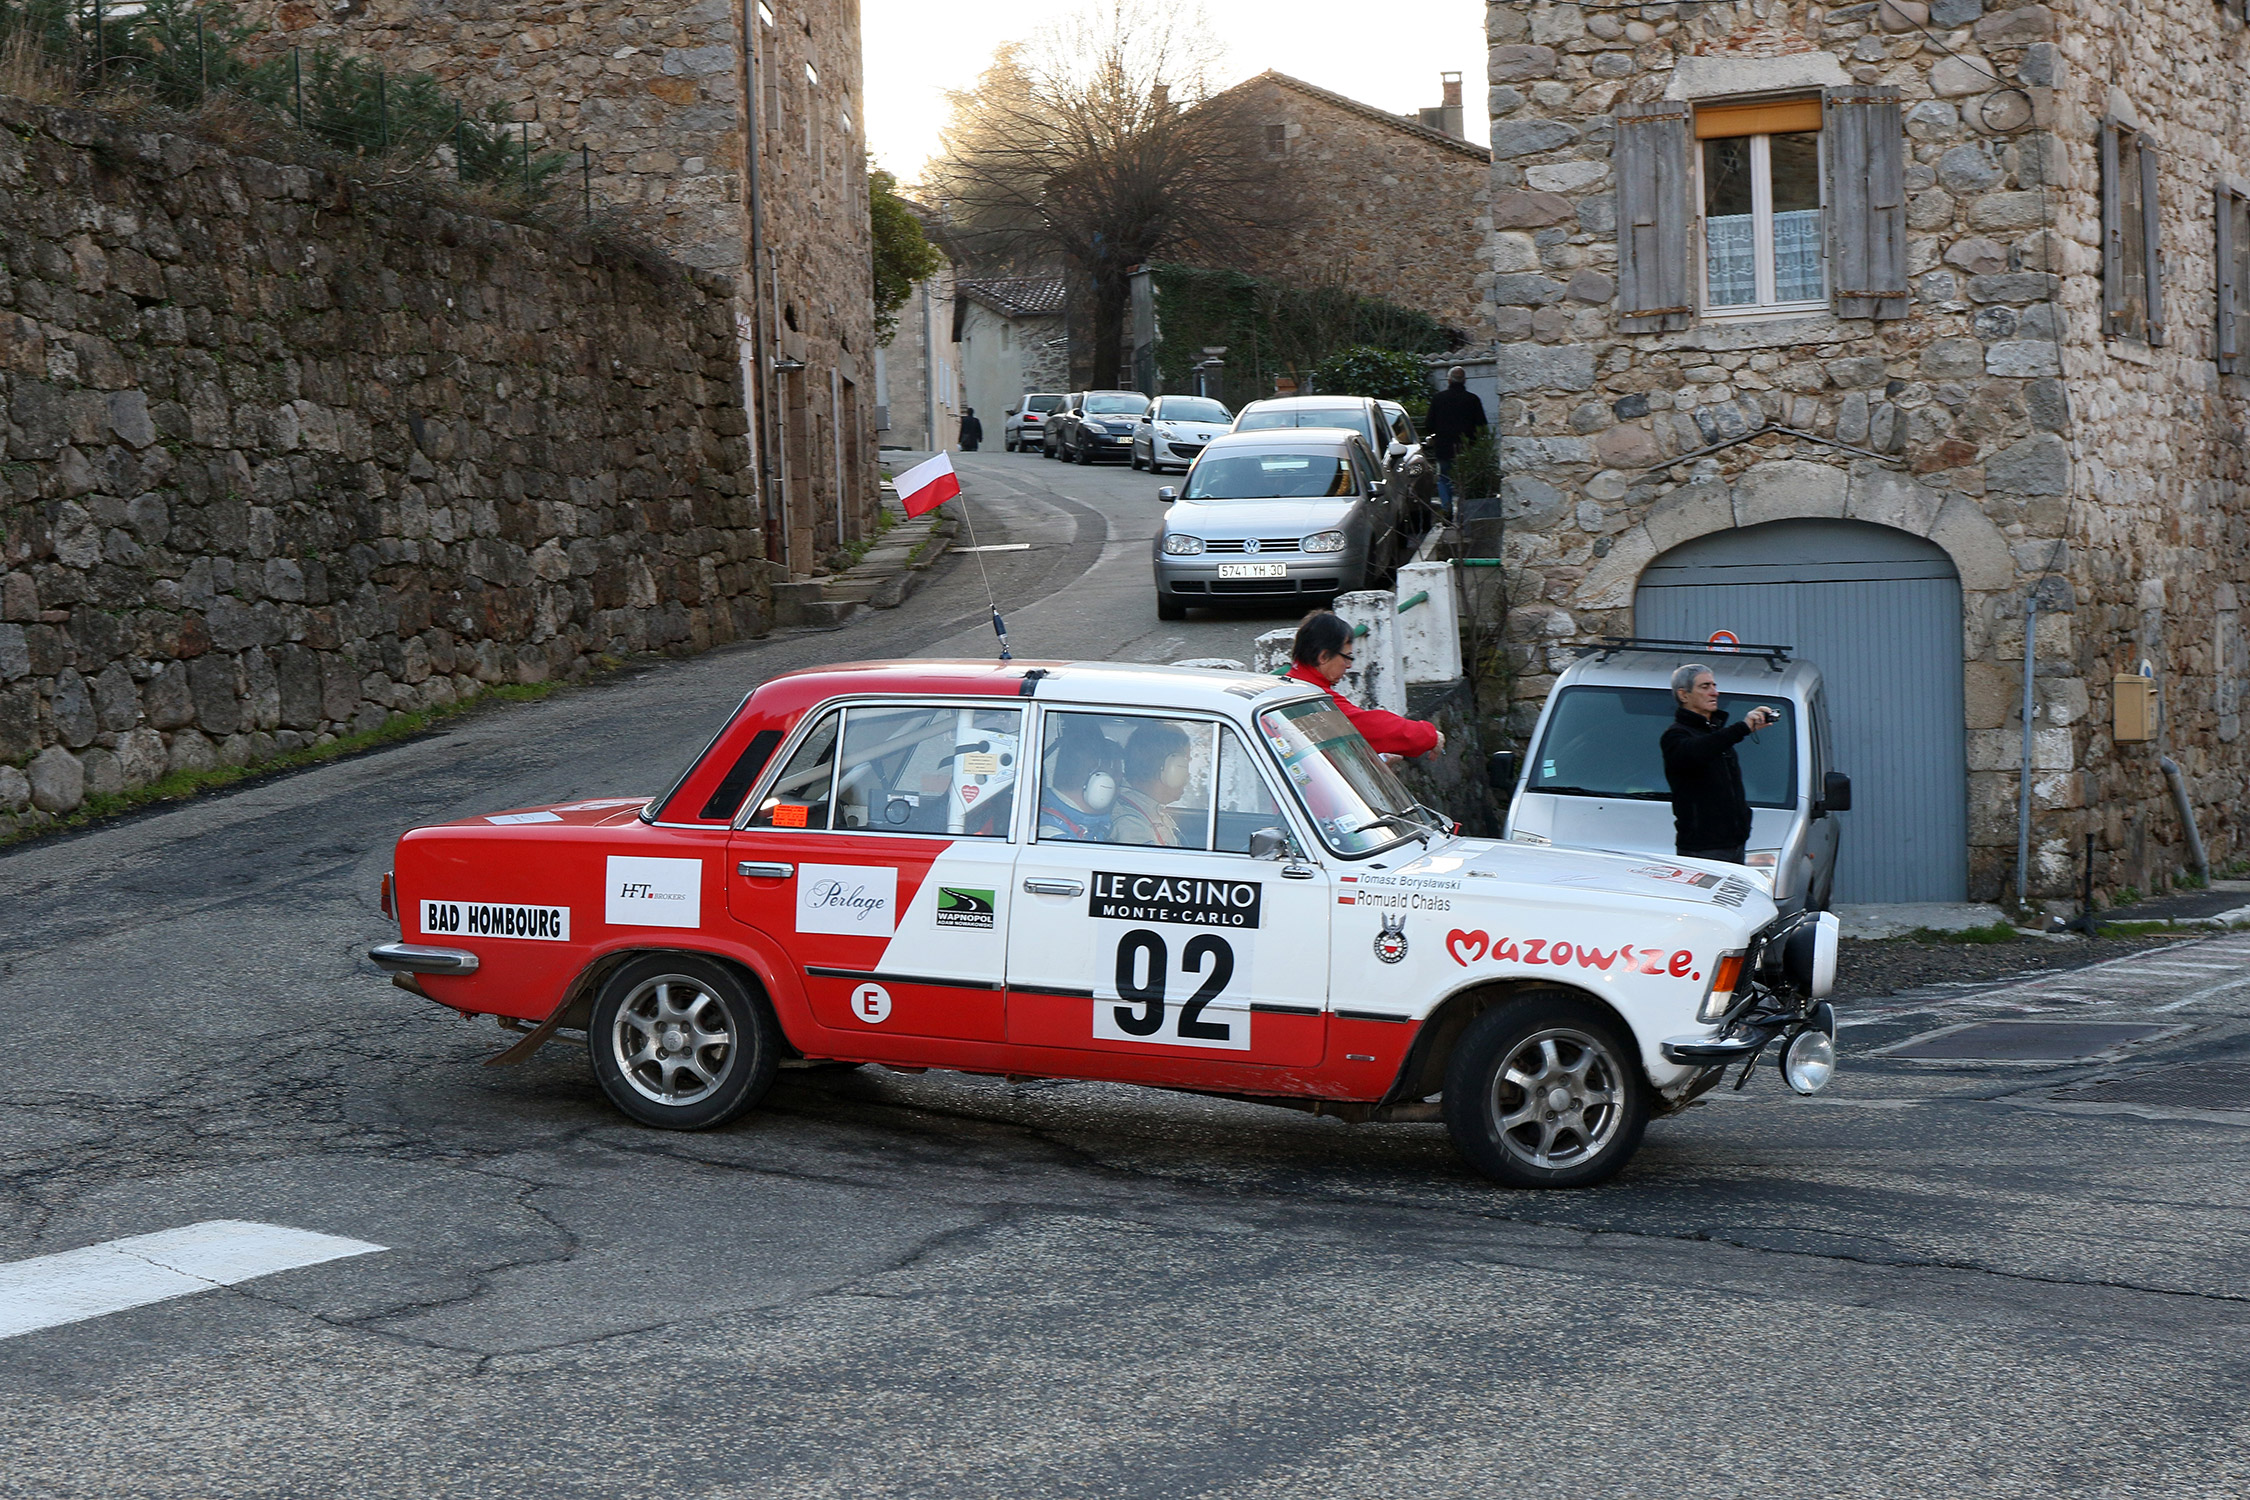 fiat 125 rally video html with 19035 104006 on Fictitious Motorcycle further 19035 103989 likewise 25 Fiat Ritmo 125 Tc Abarth 1982 118 Lm089 3794386271303 furthermore Harley Davidson Sportster Iron 883 Noir Desir Essai Video 49334 further Mercedes Benz Lautomobile  pie 125 Anni.